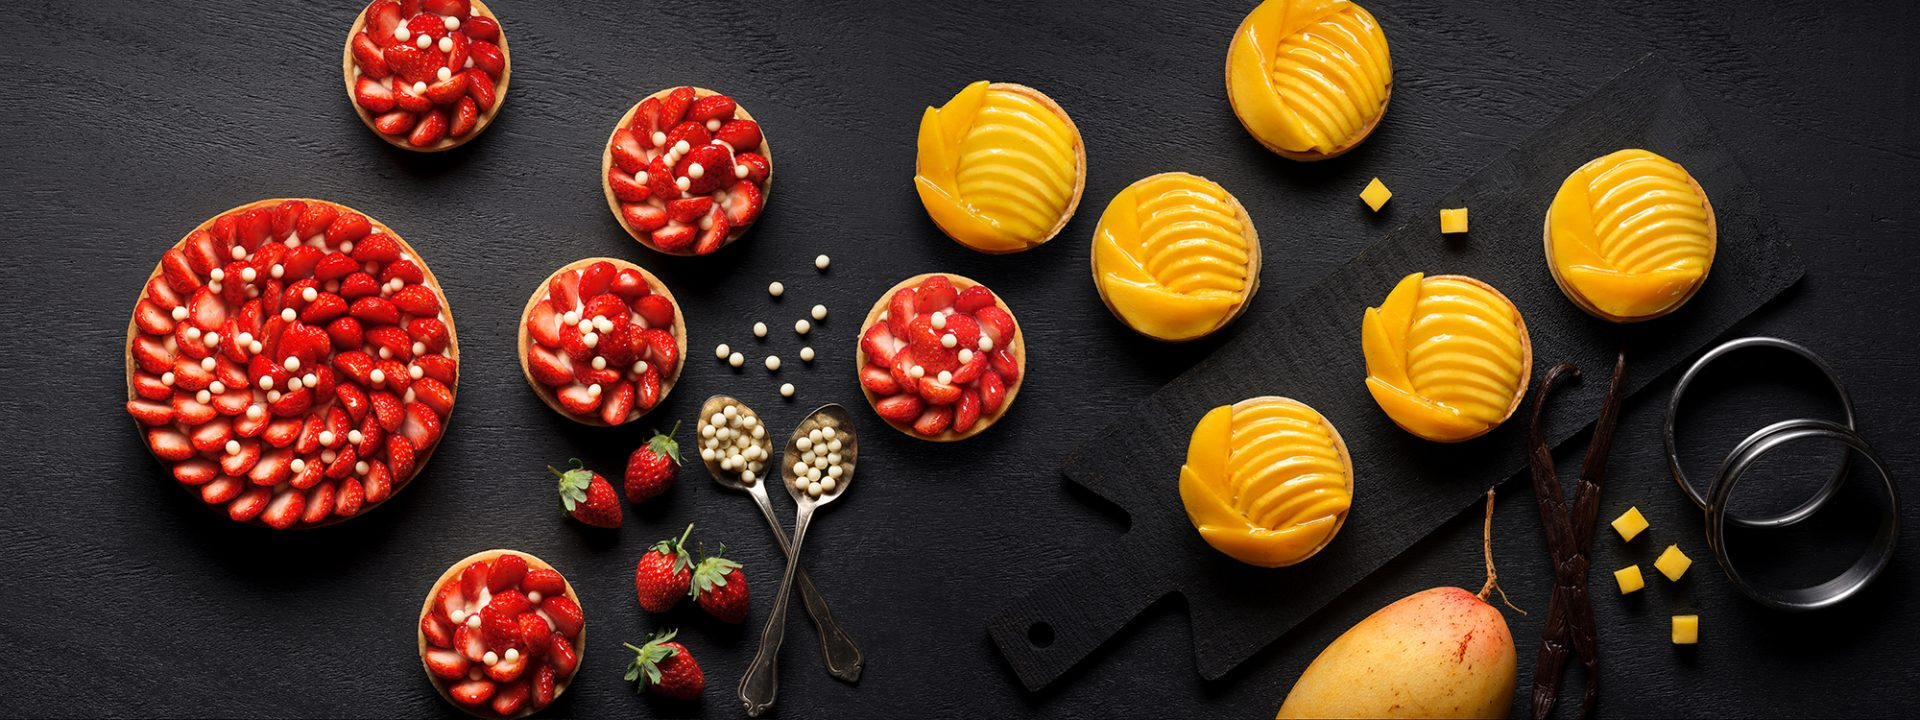 LSA Exclusive: Chef Cheryl Koh expands Tarte into a full sit